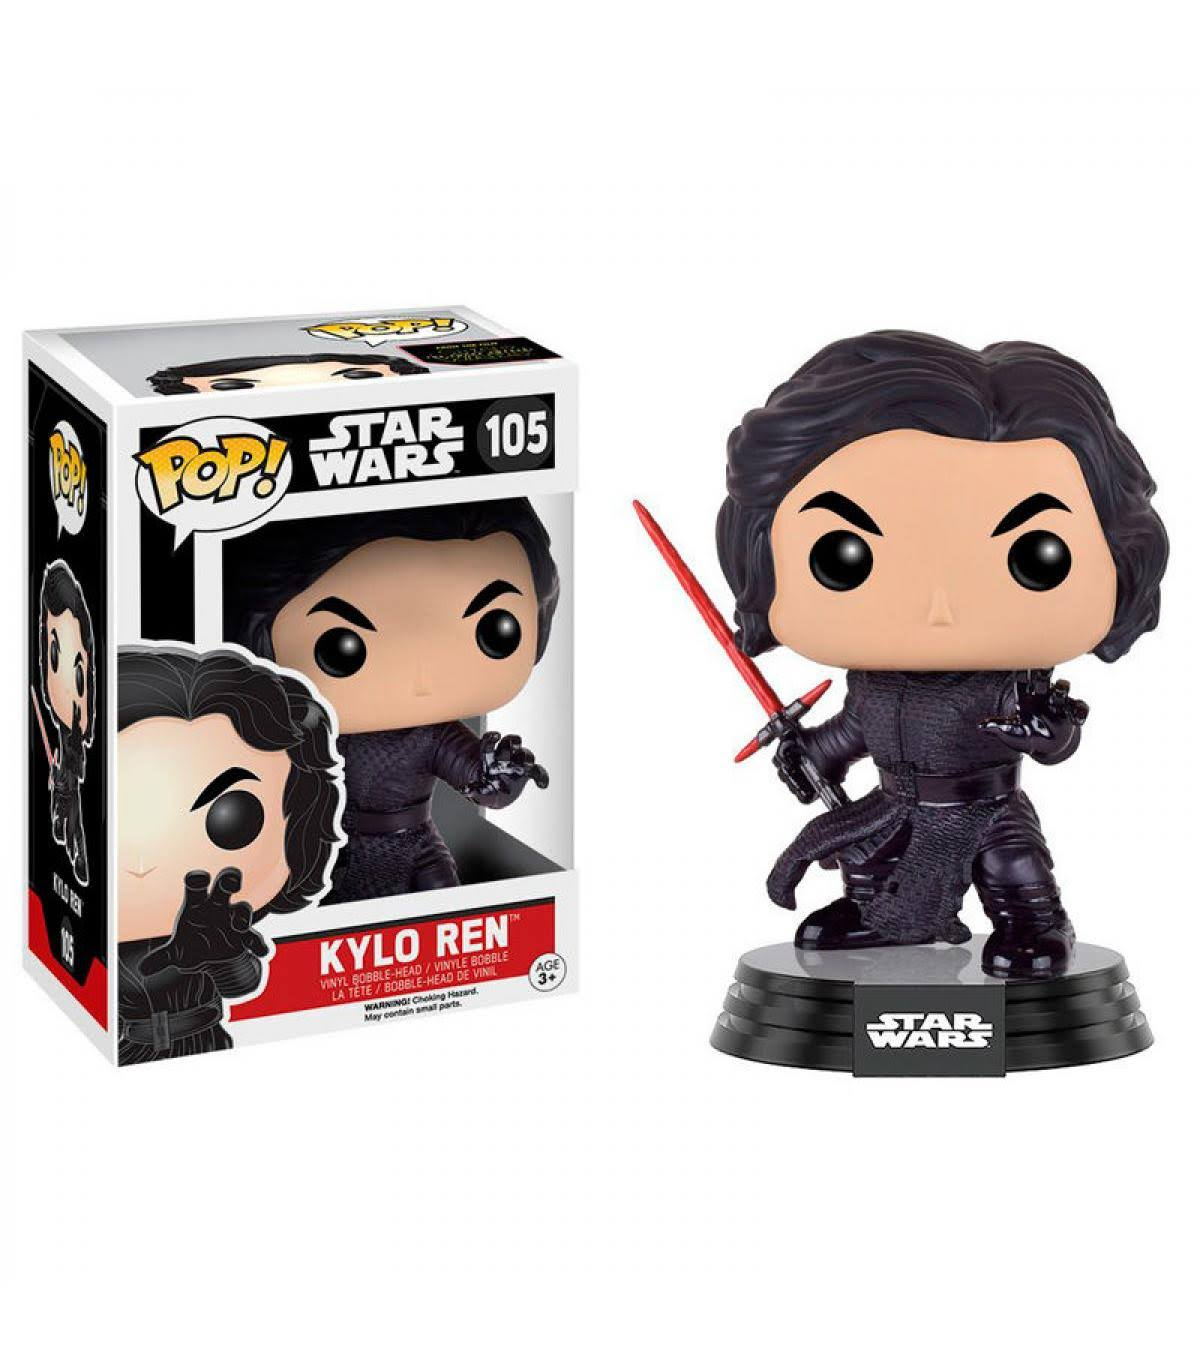 Funko Pop Star Wars 105 Kylo Ren Action Figure